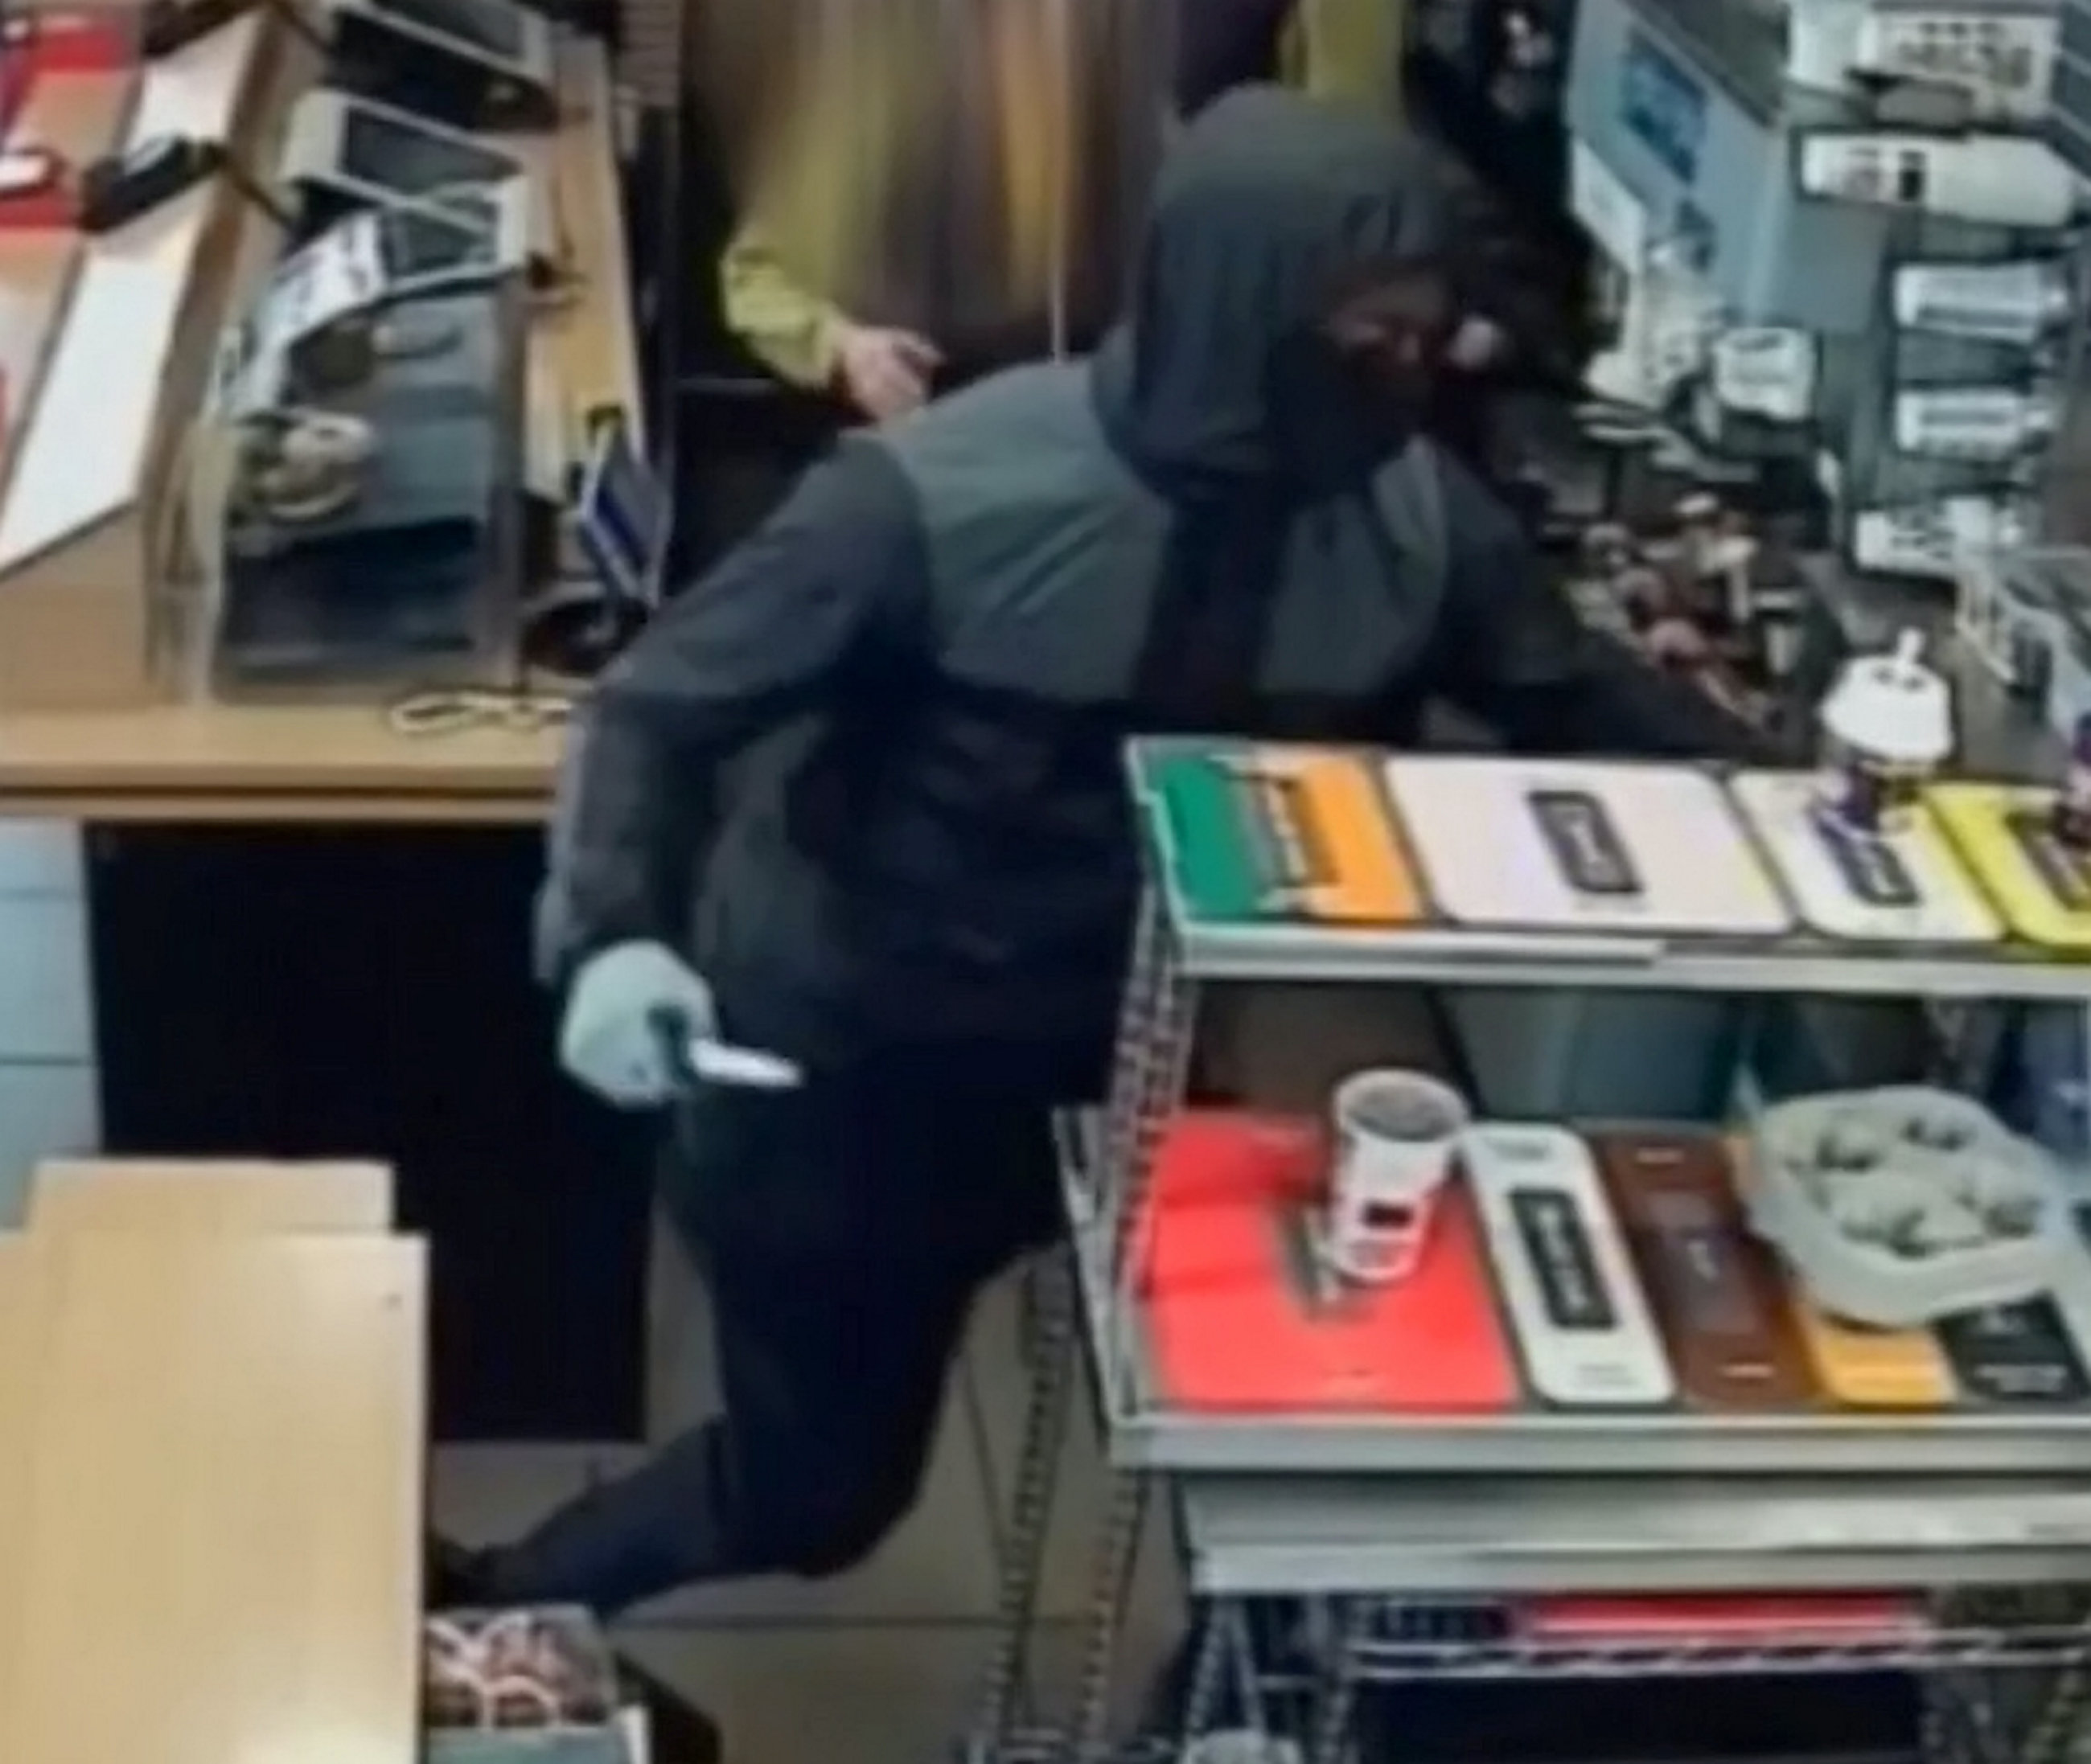 Knife-Wielding Robber Raids McDonald's... To Steal Monopoly Cards